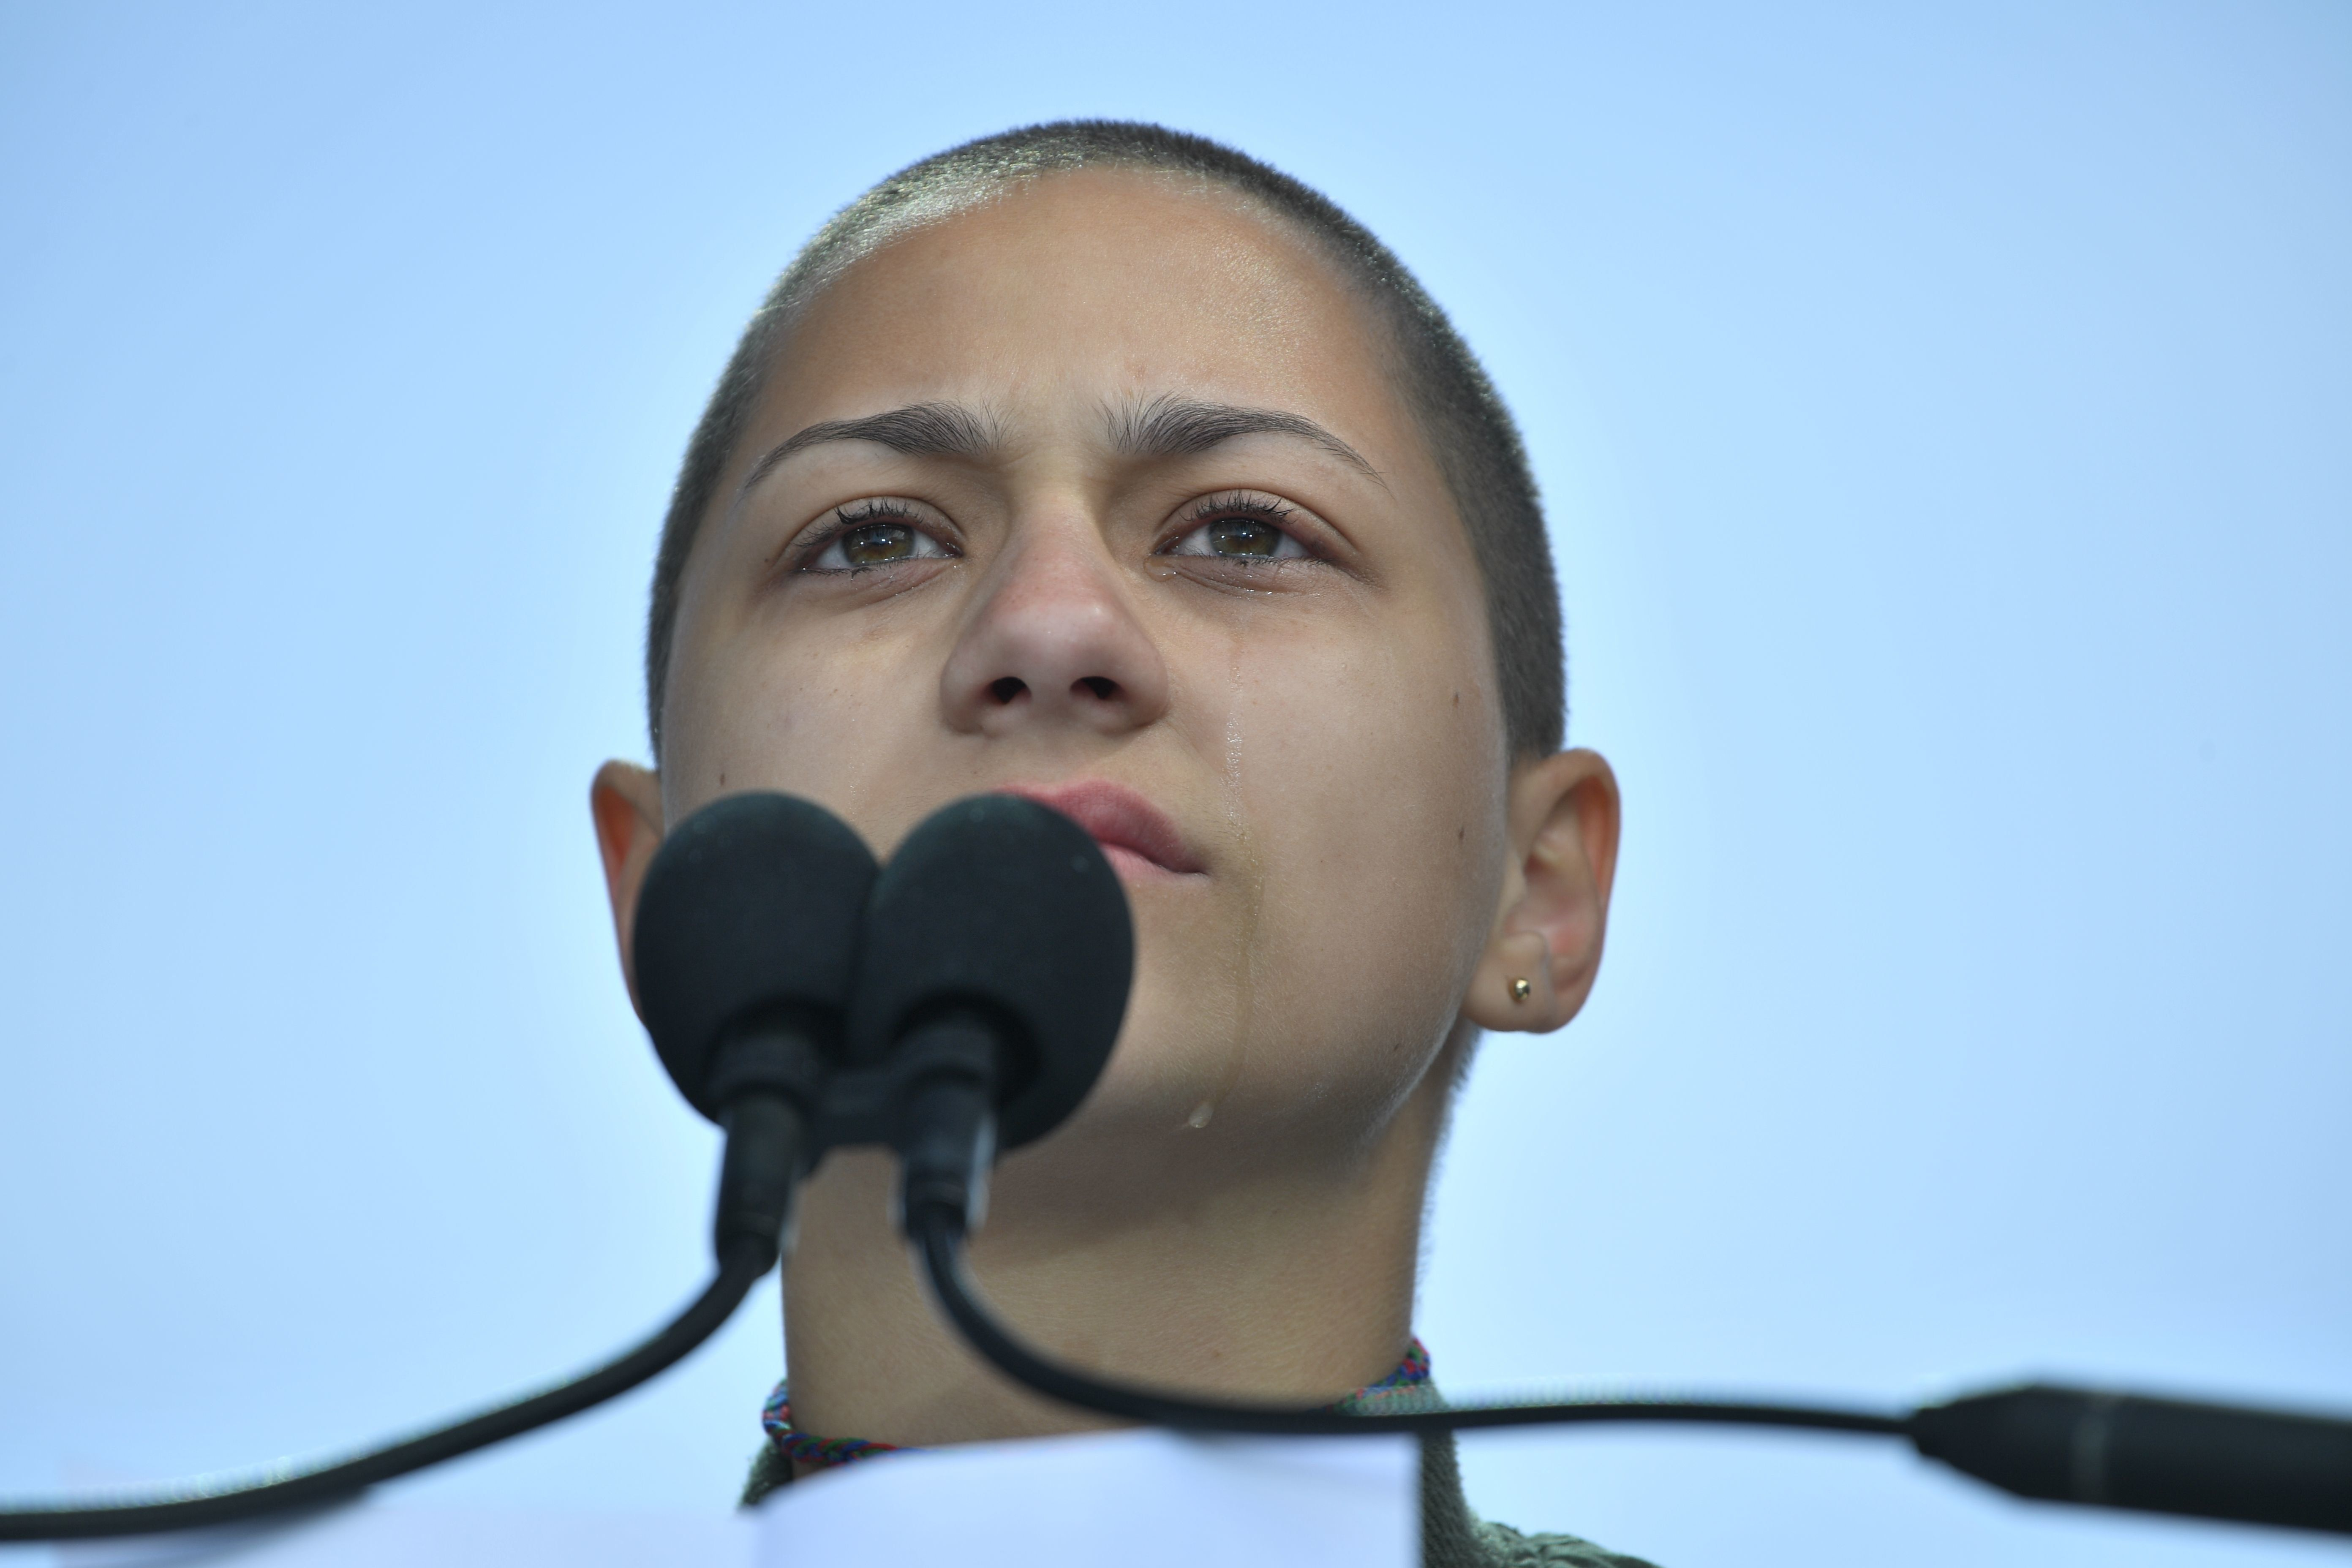 Marjory Stoneman Douglas High School student Emma Gonzalez stayed silent for 6 minutes and 20 seconds in her speech.